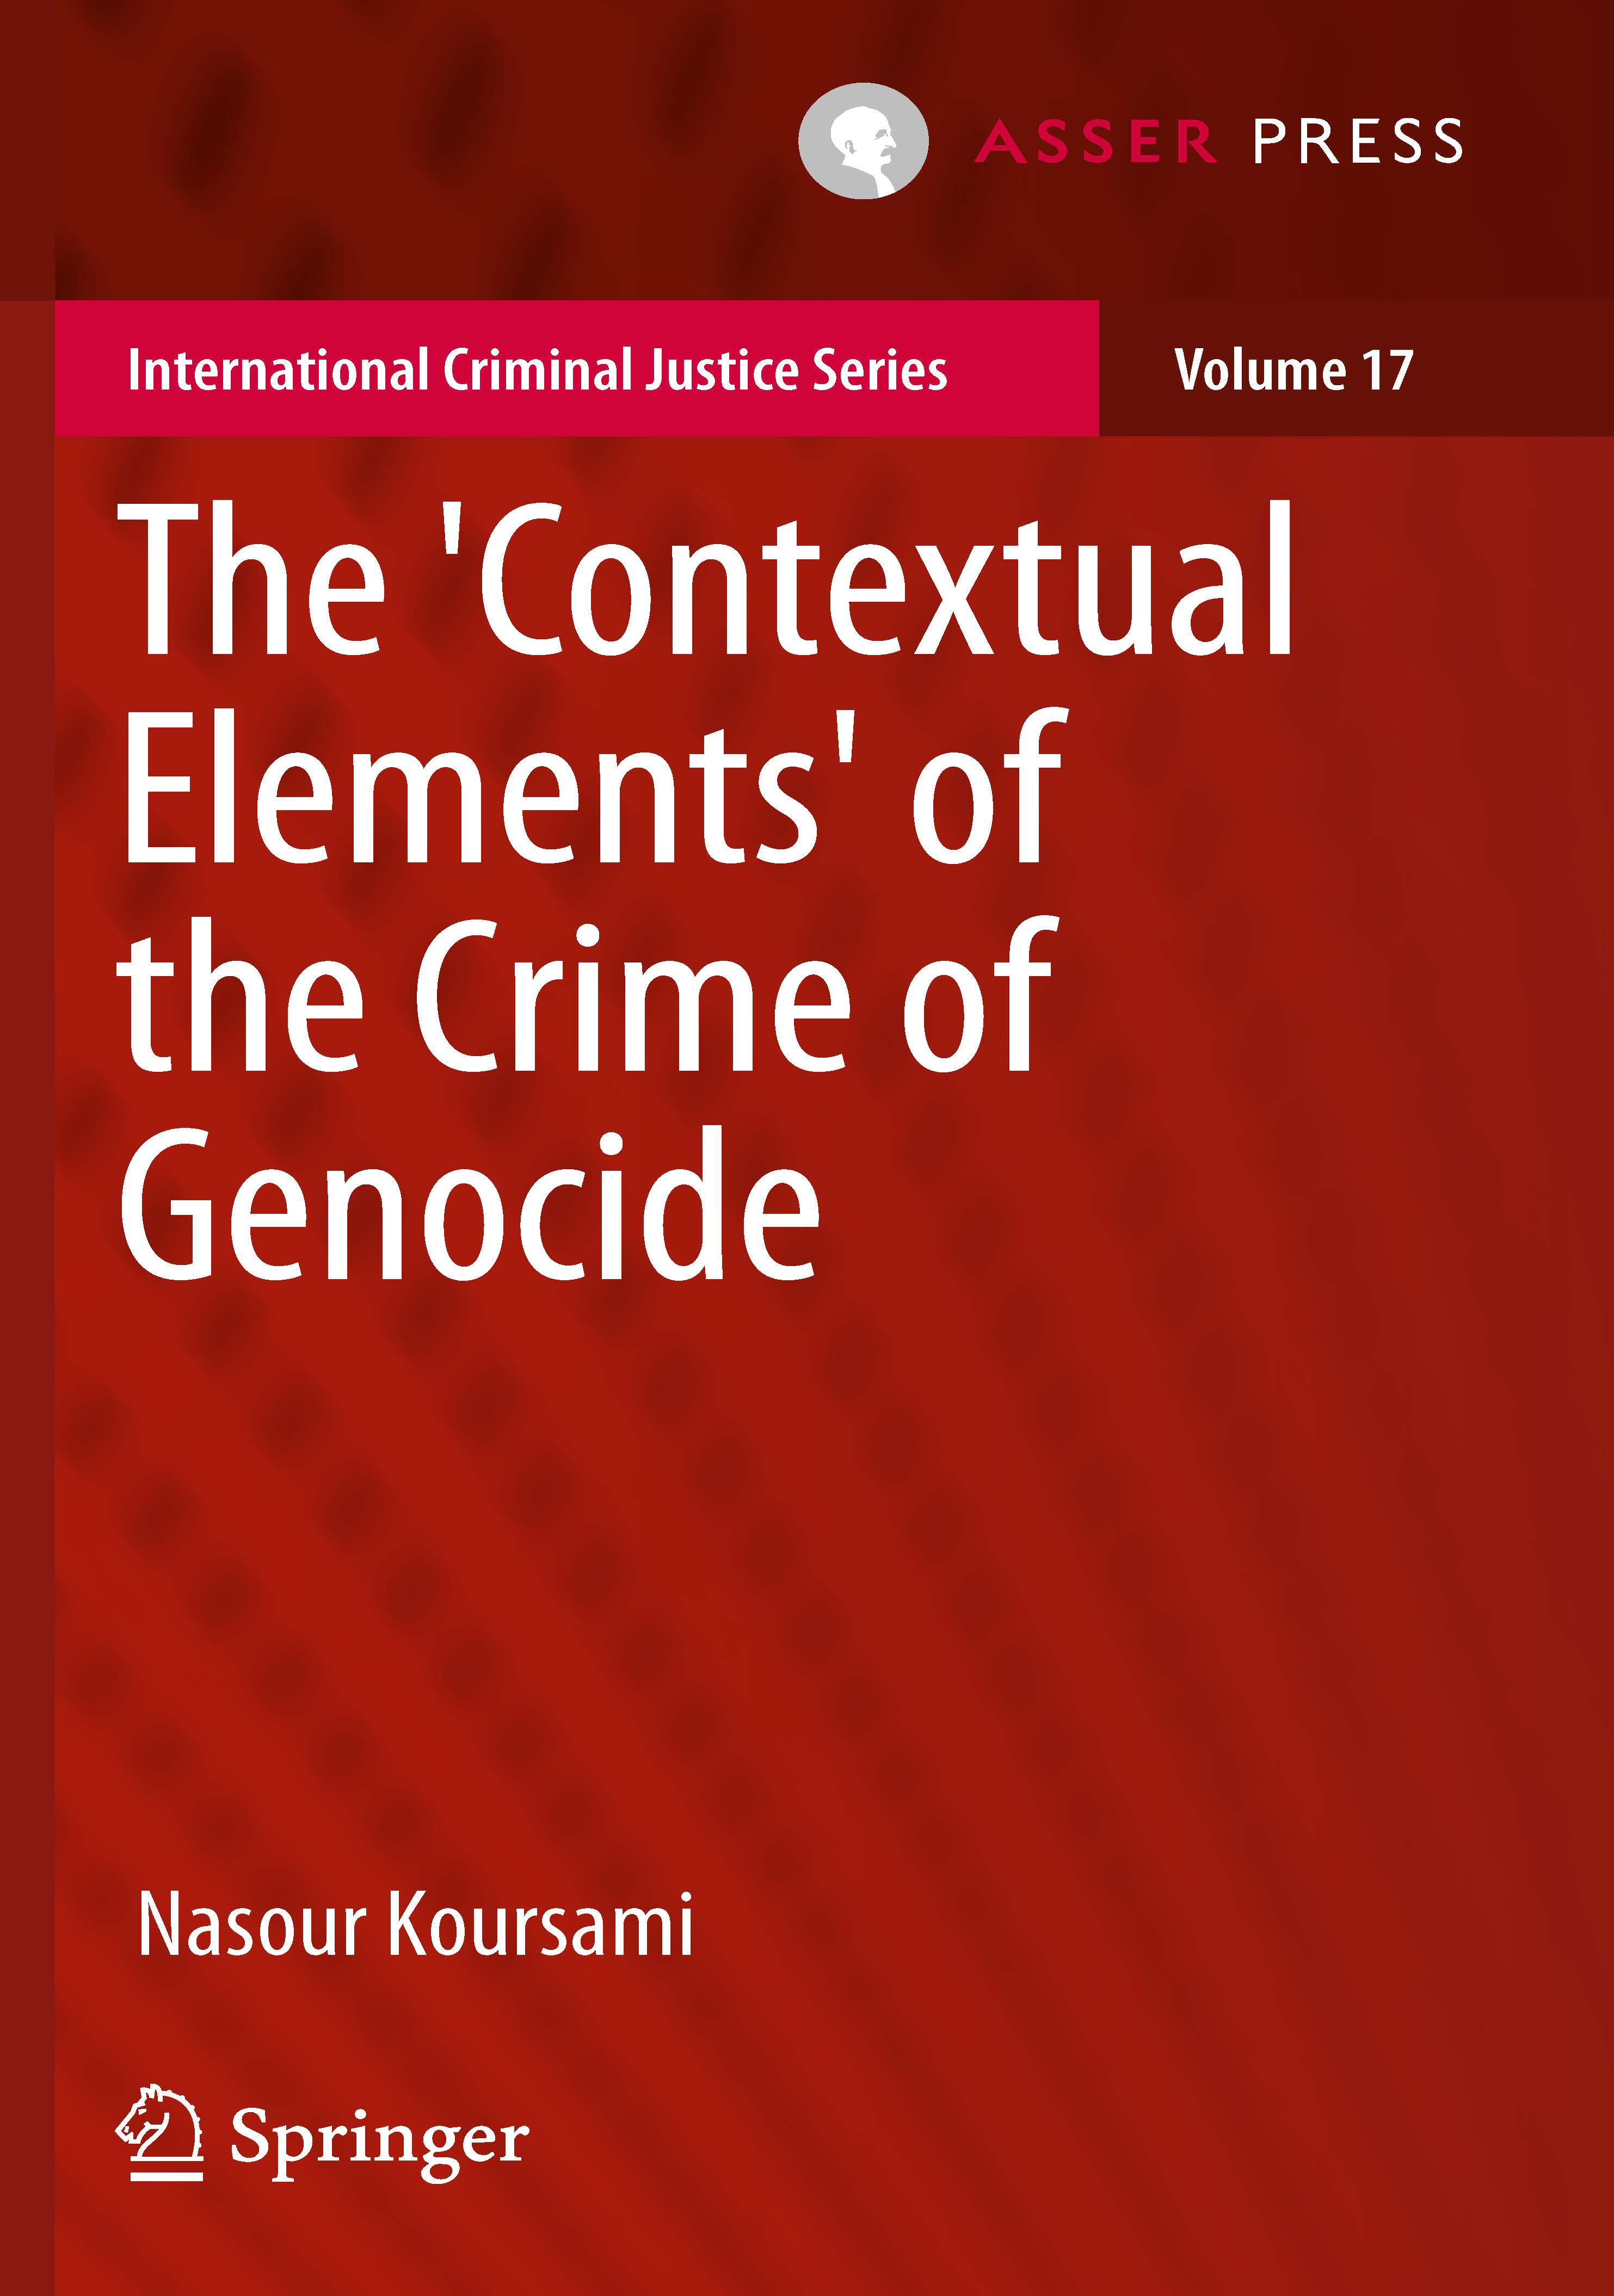 The 'Contextual Elements' of the Crime of Genocide